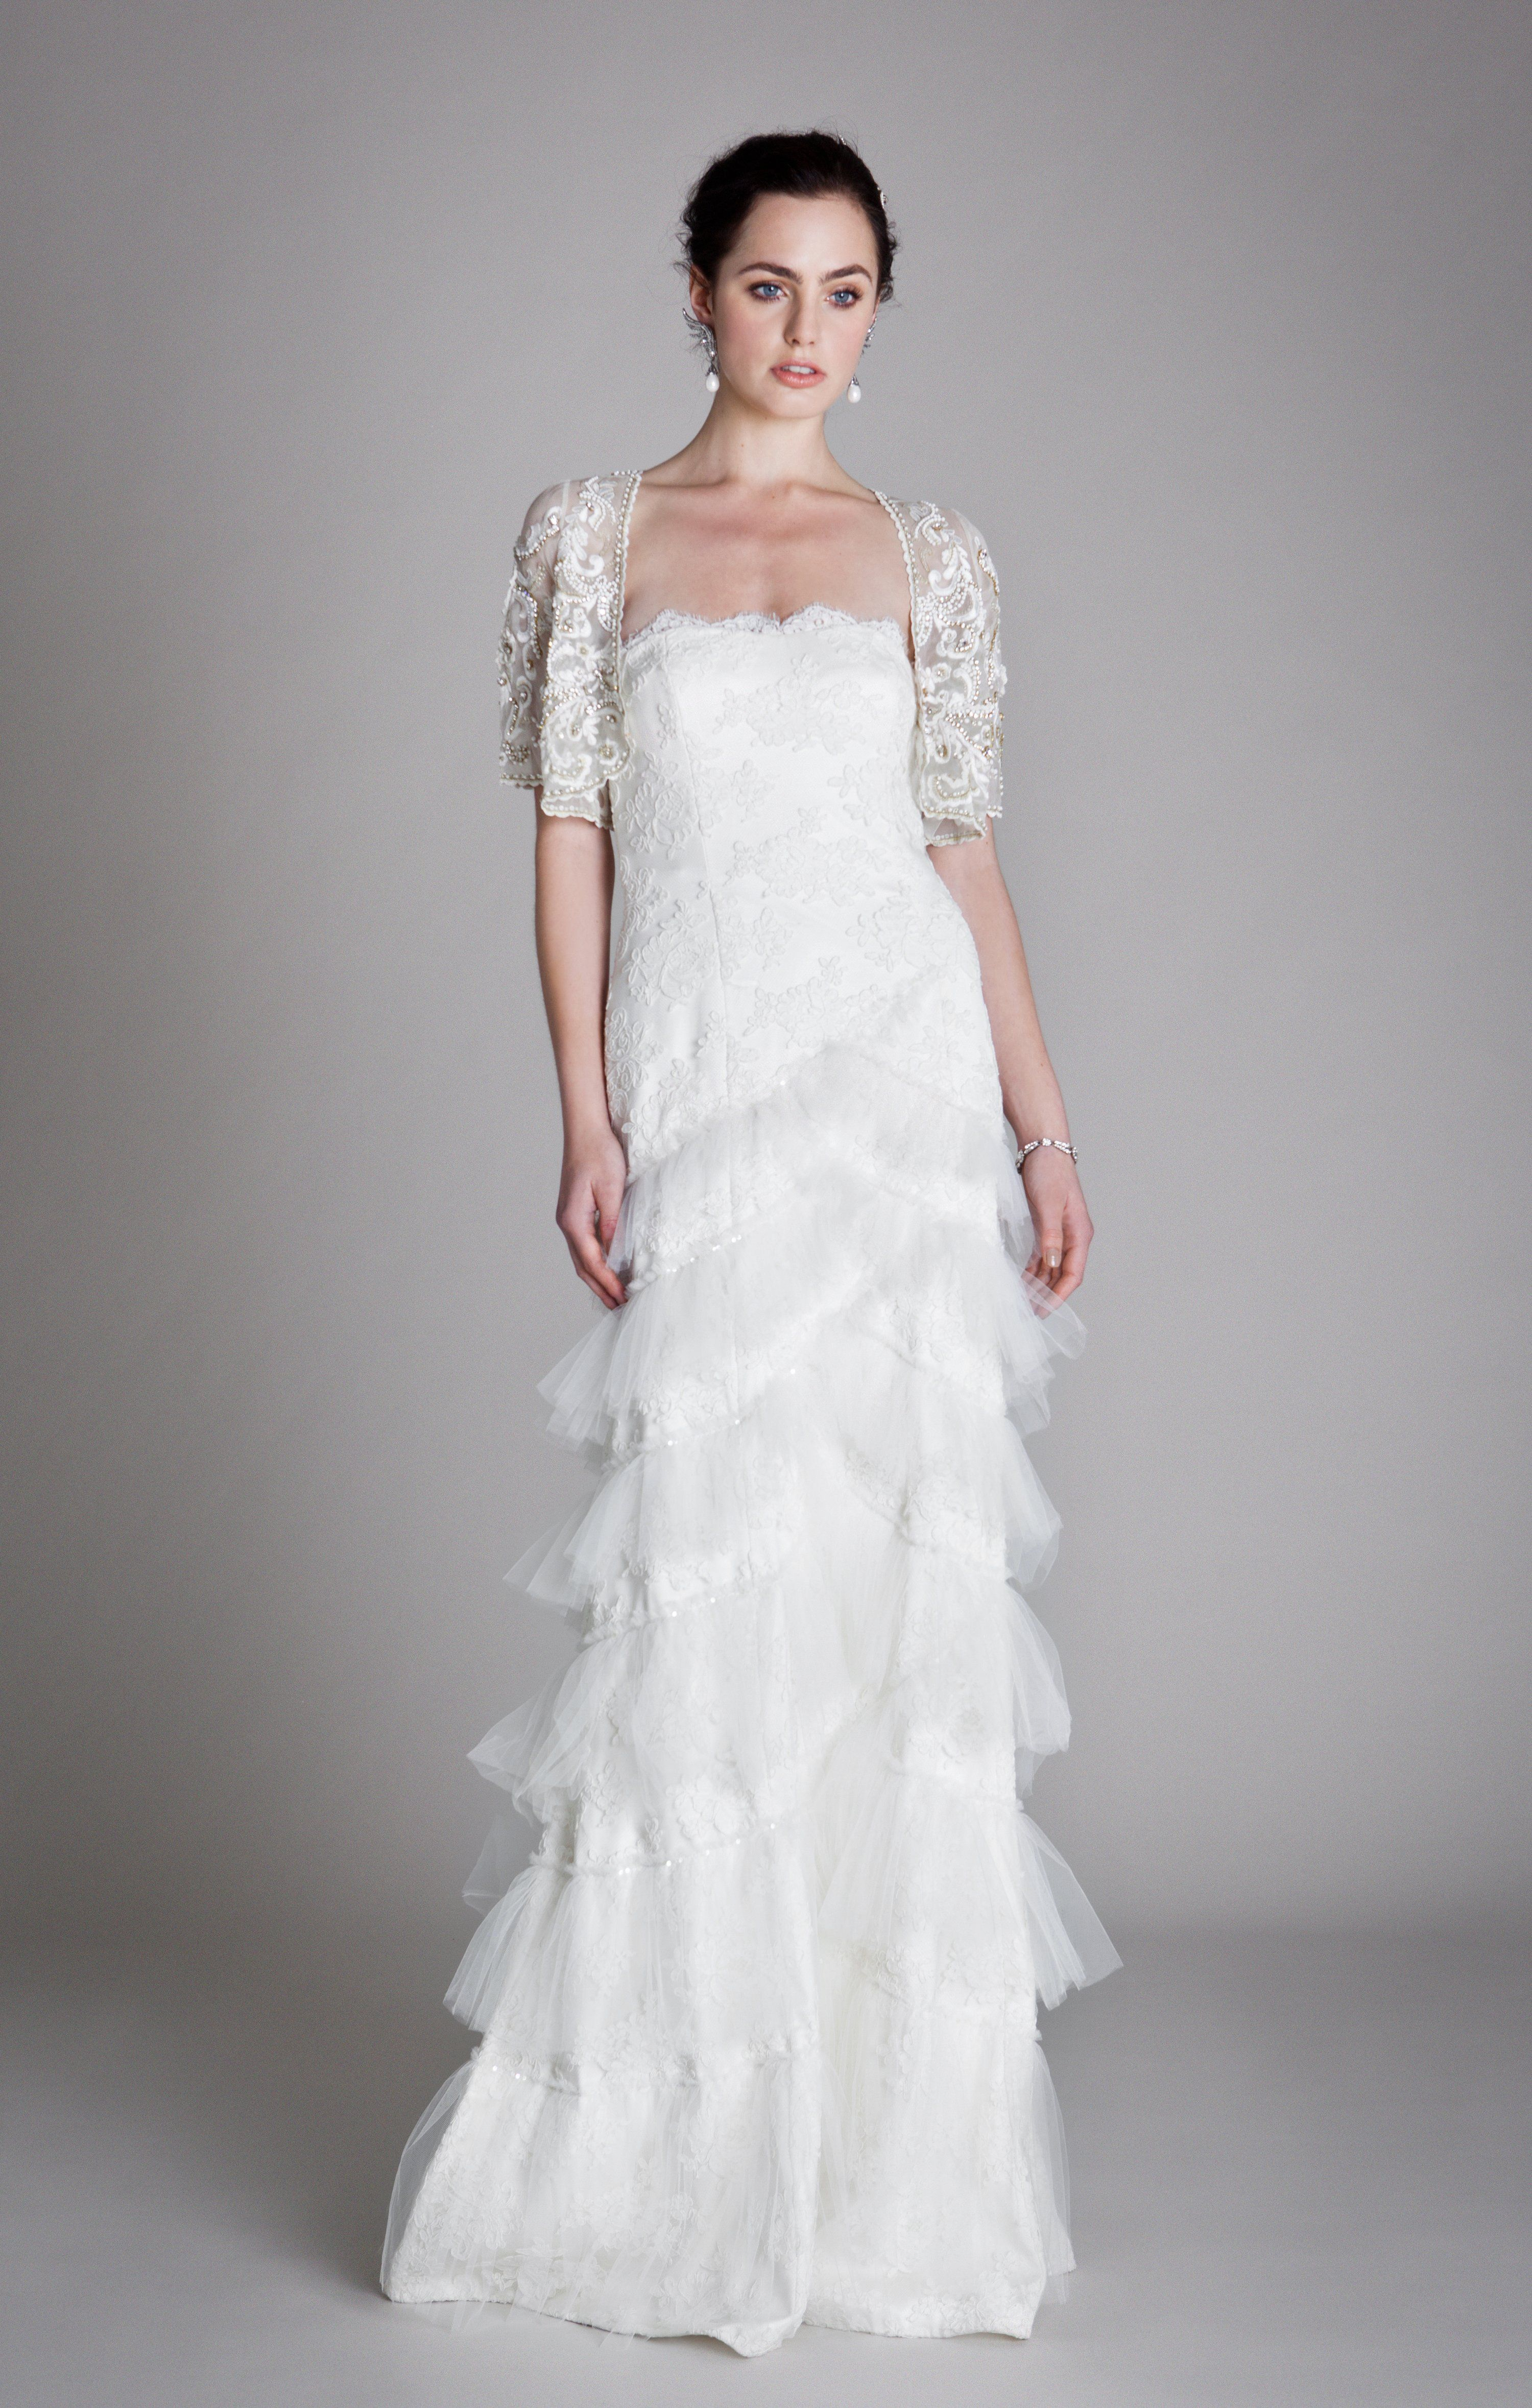 Temperley Bridal, Beatrice Collection, Dove Dress